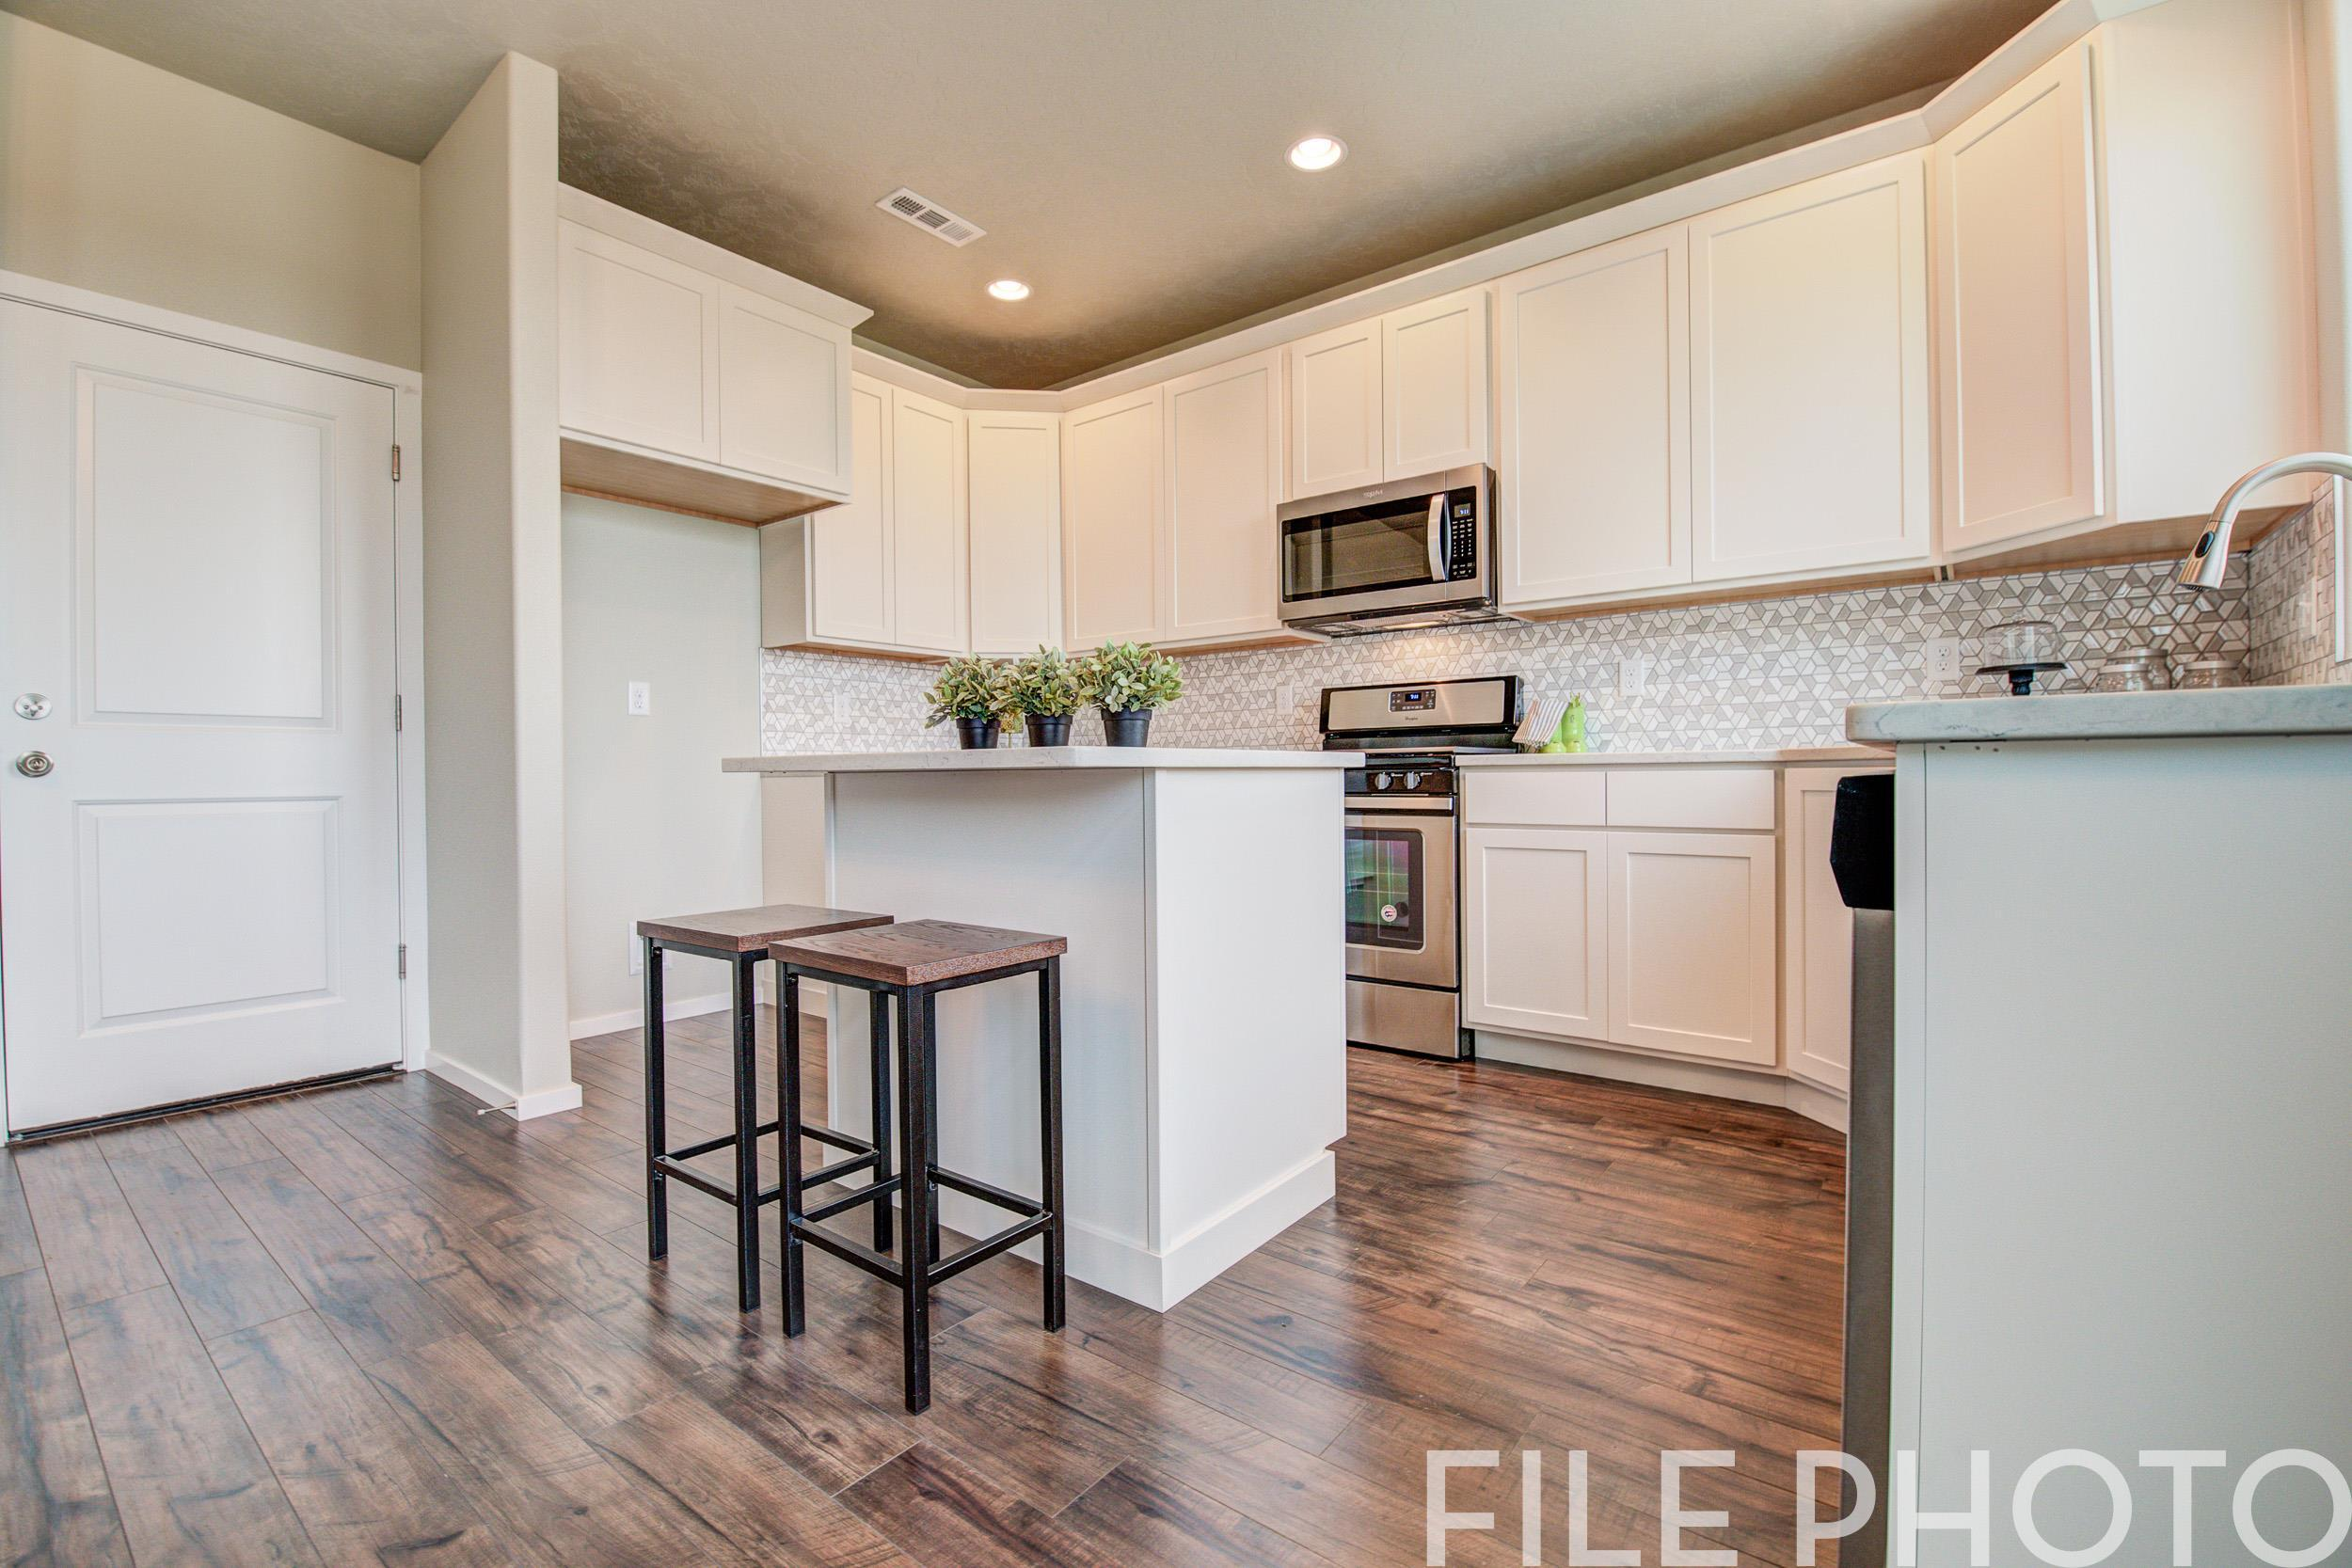 Kitchen featured in The Whistler By RYN Built Homes in Richland, WA